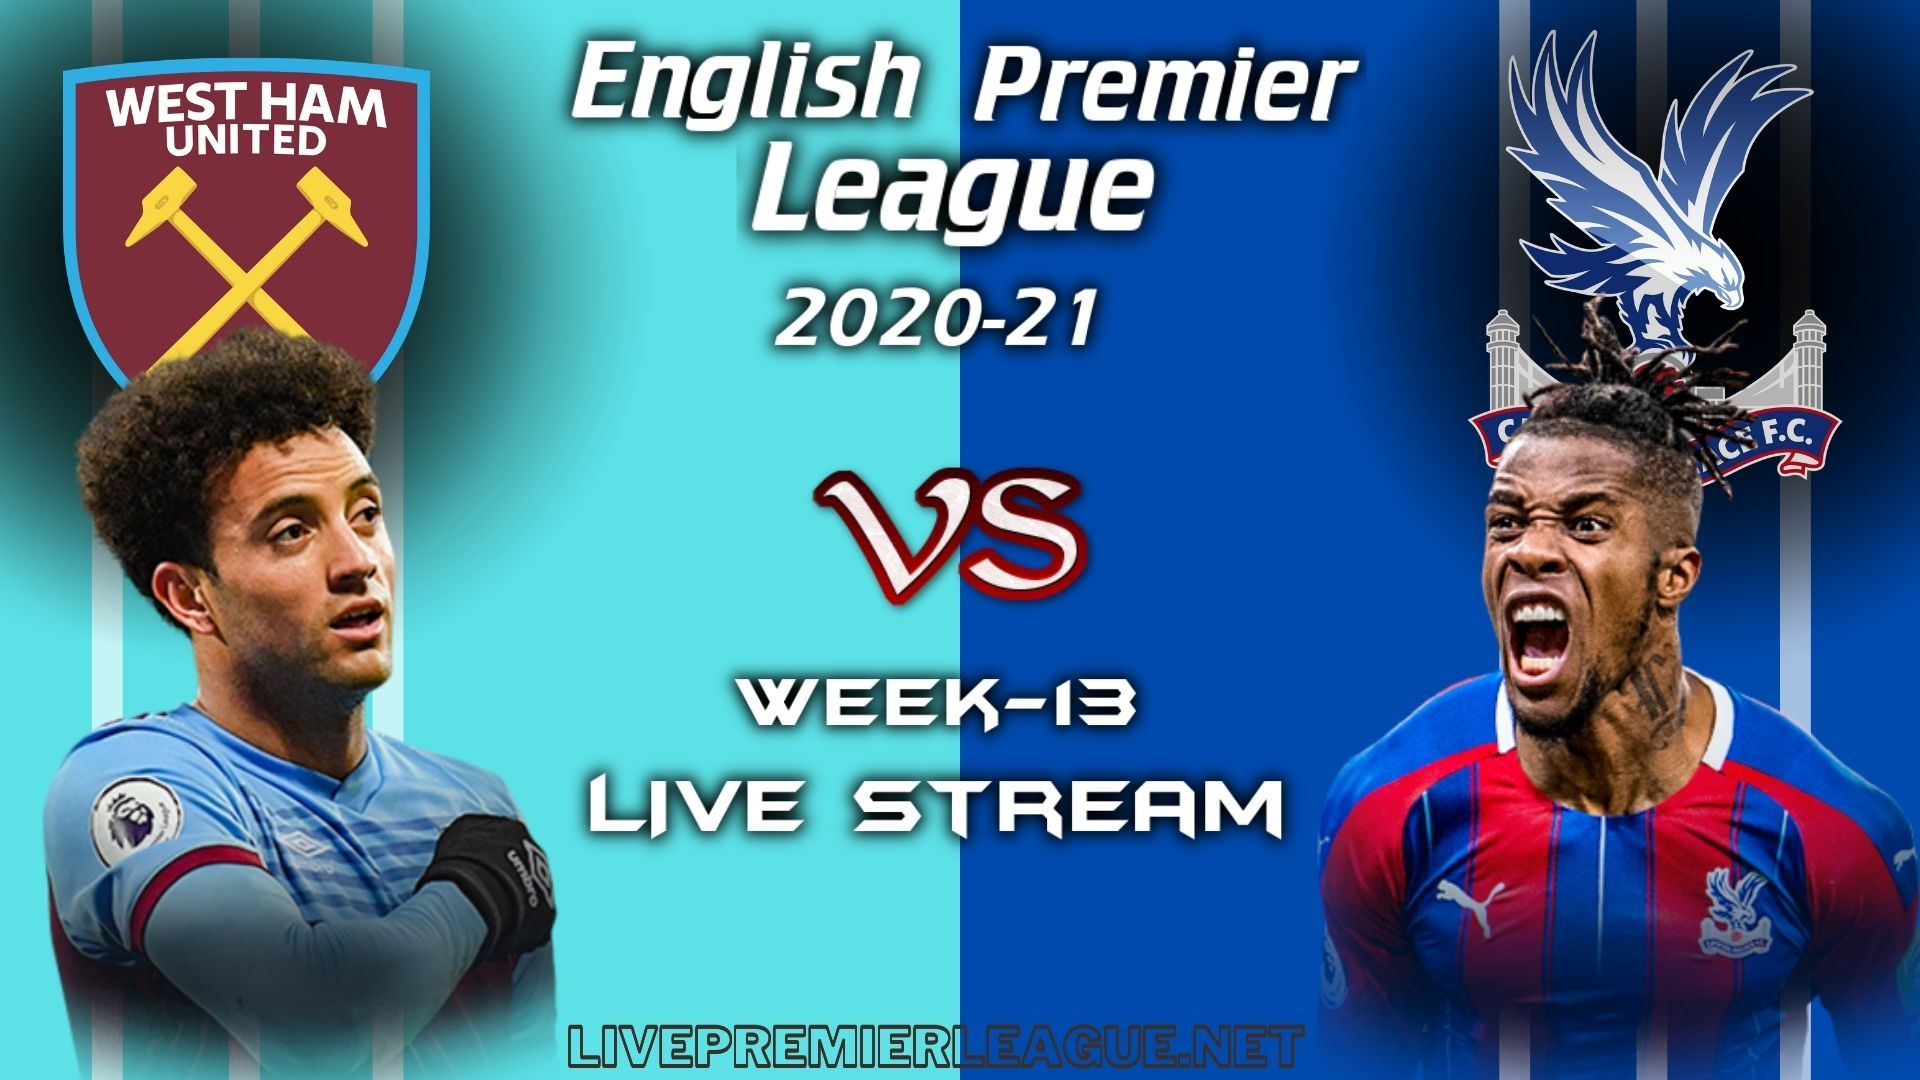 West Ham United Vs Crystal Palace Live Stream 2020 Week 13 Brighton Hove Albion Brighton And Hove St James Park